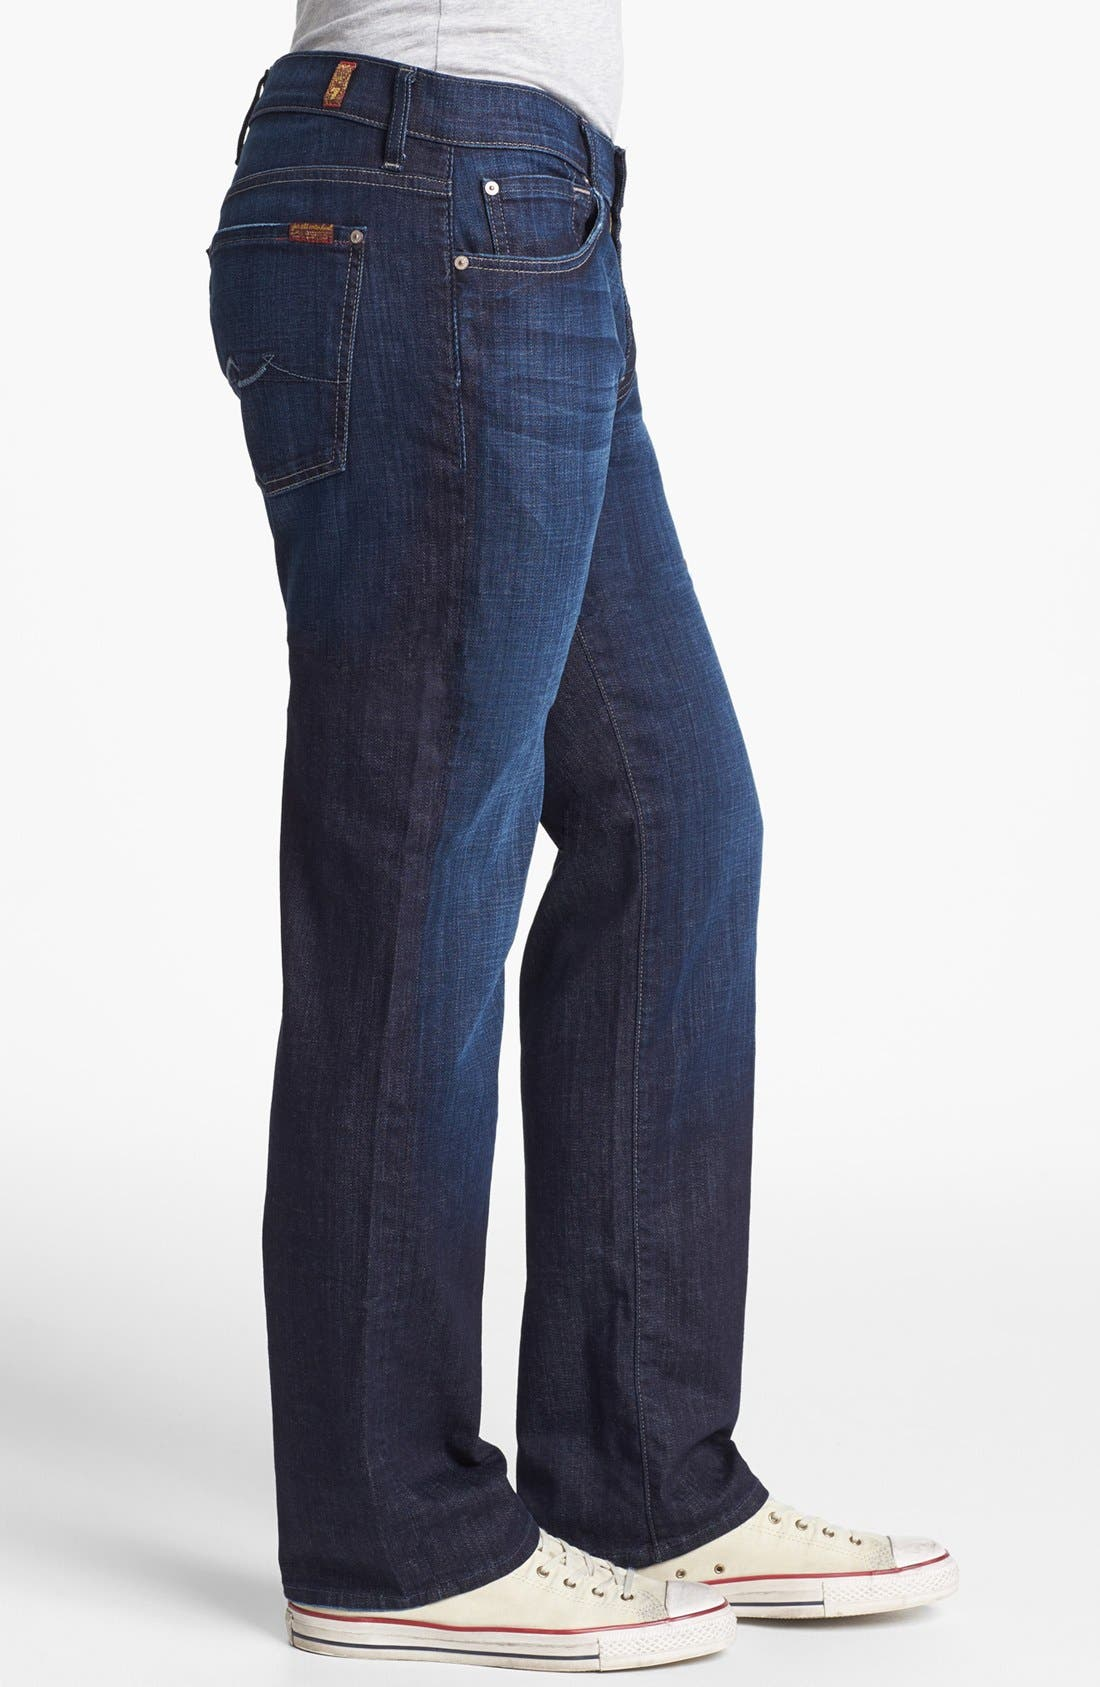 Austyn Relaxed Straight Leg Jeans,                             Alternate thumbnail 4, color,                             488